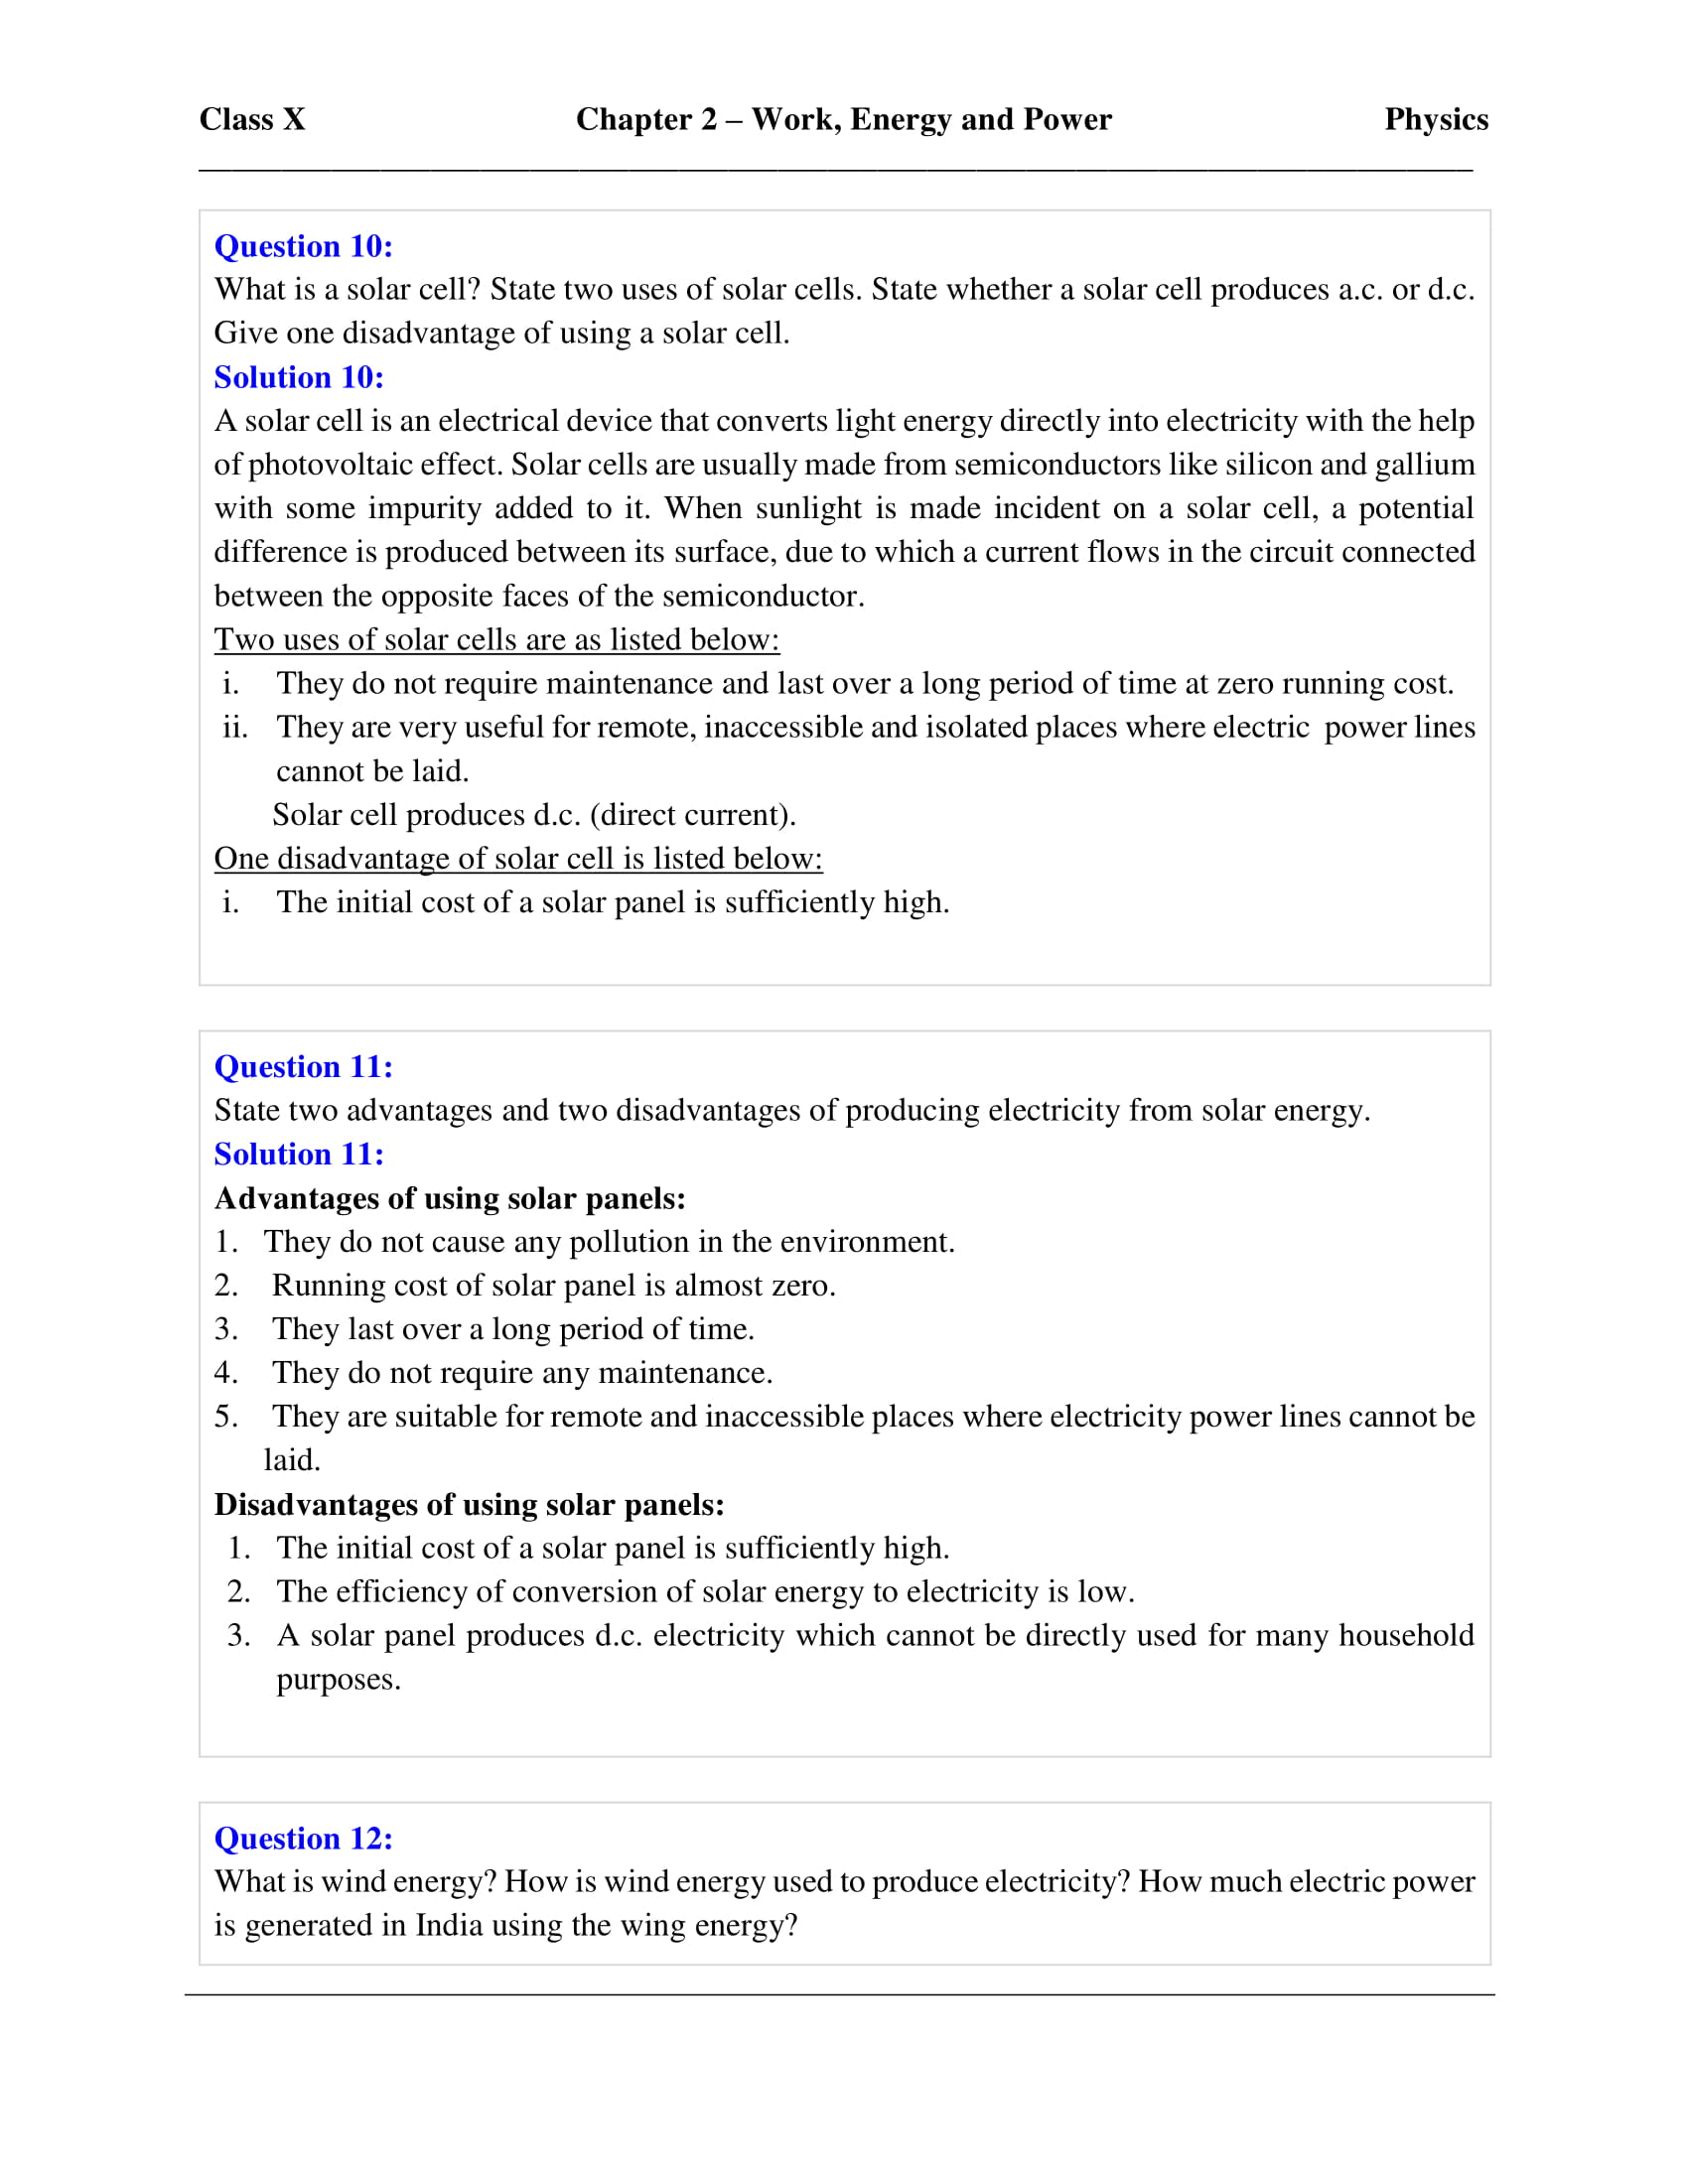 icse-selina-physics-solutions-class-10-chapter-2-work-energy-and-power-36